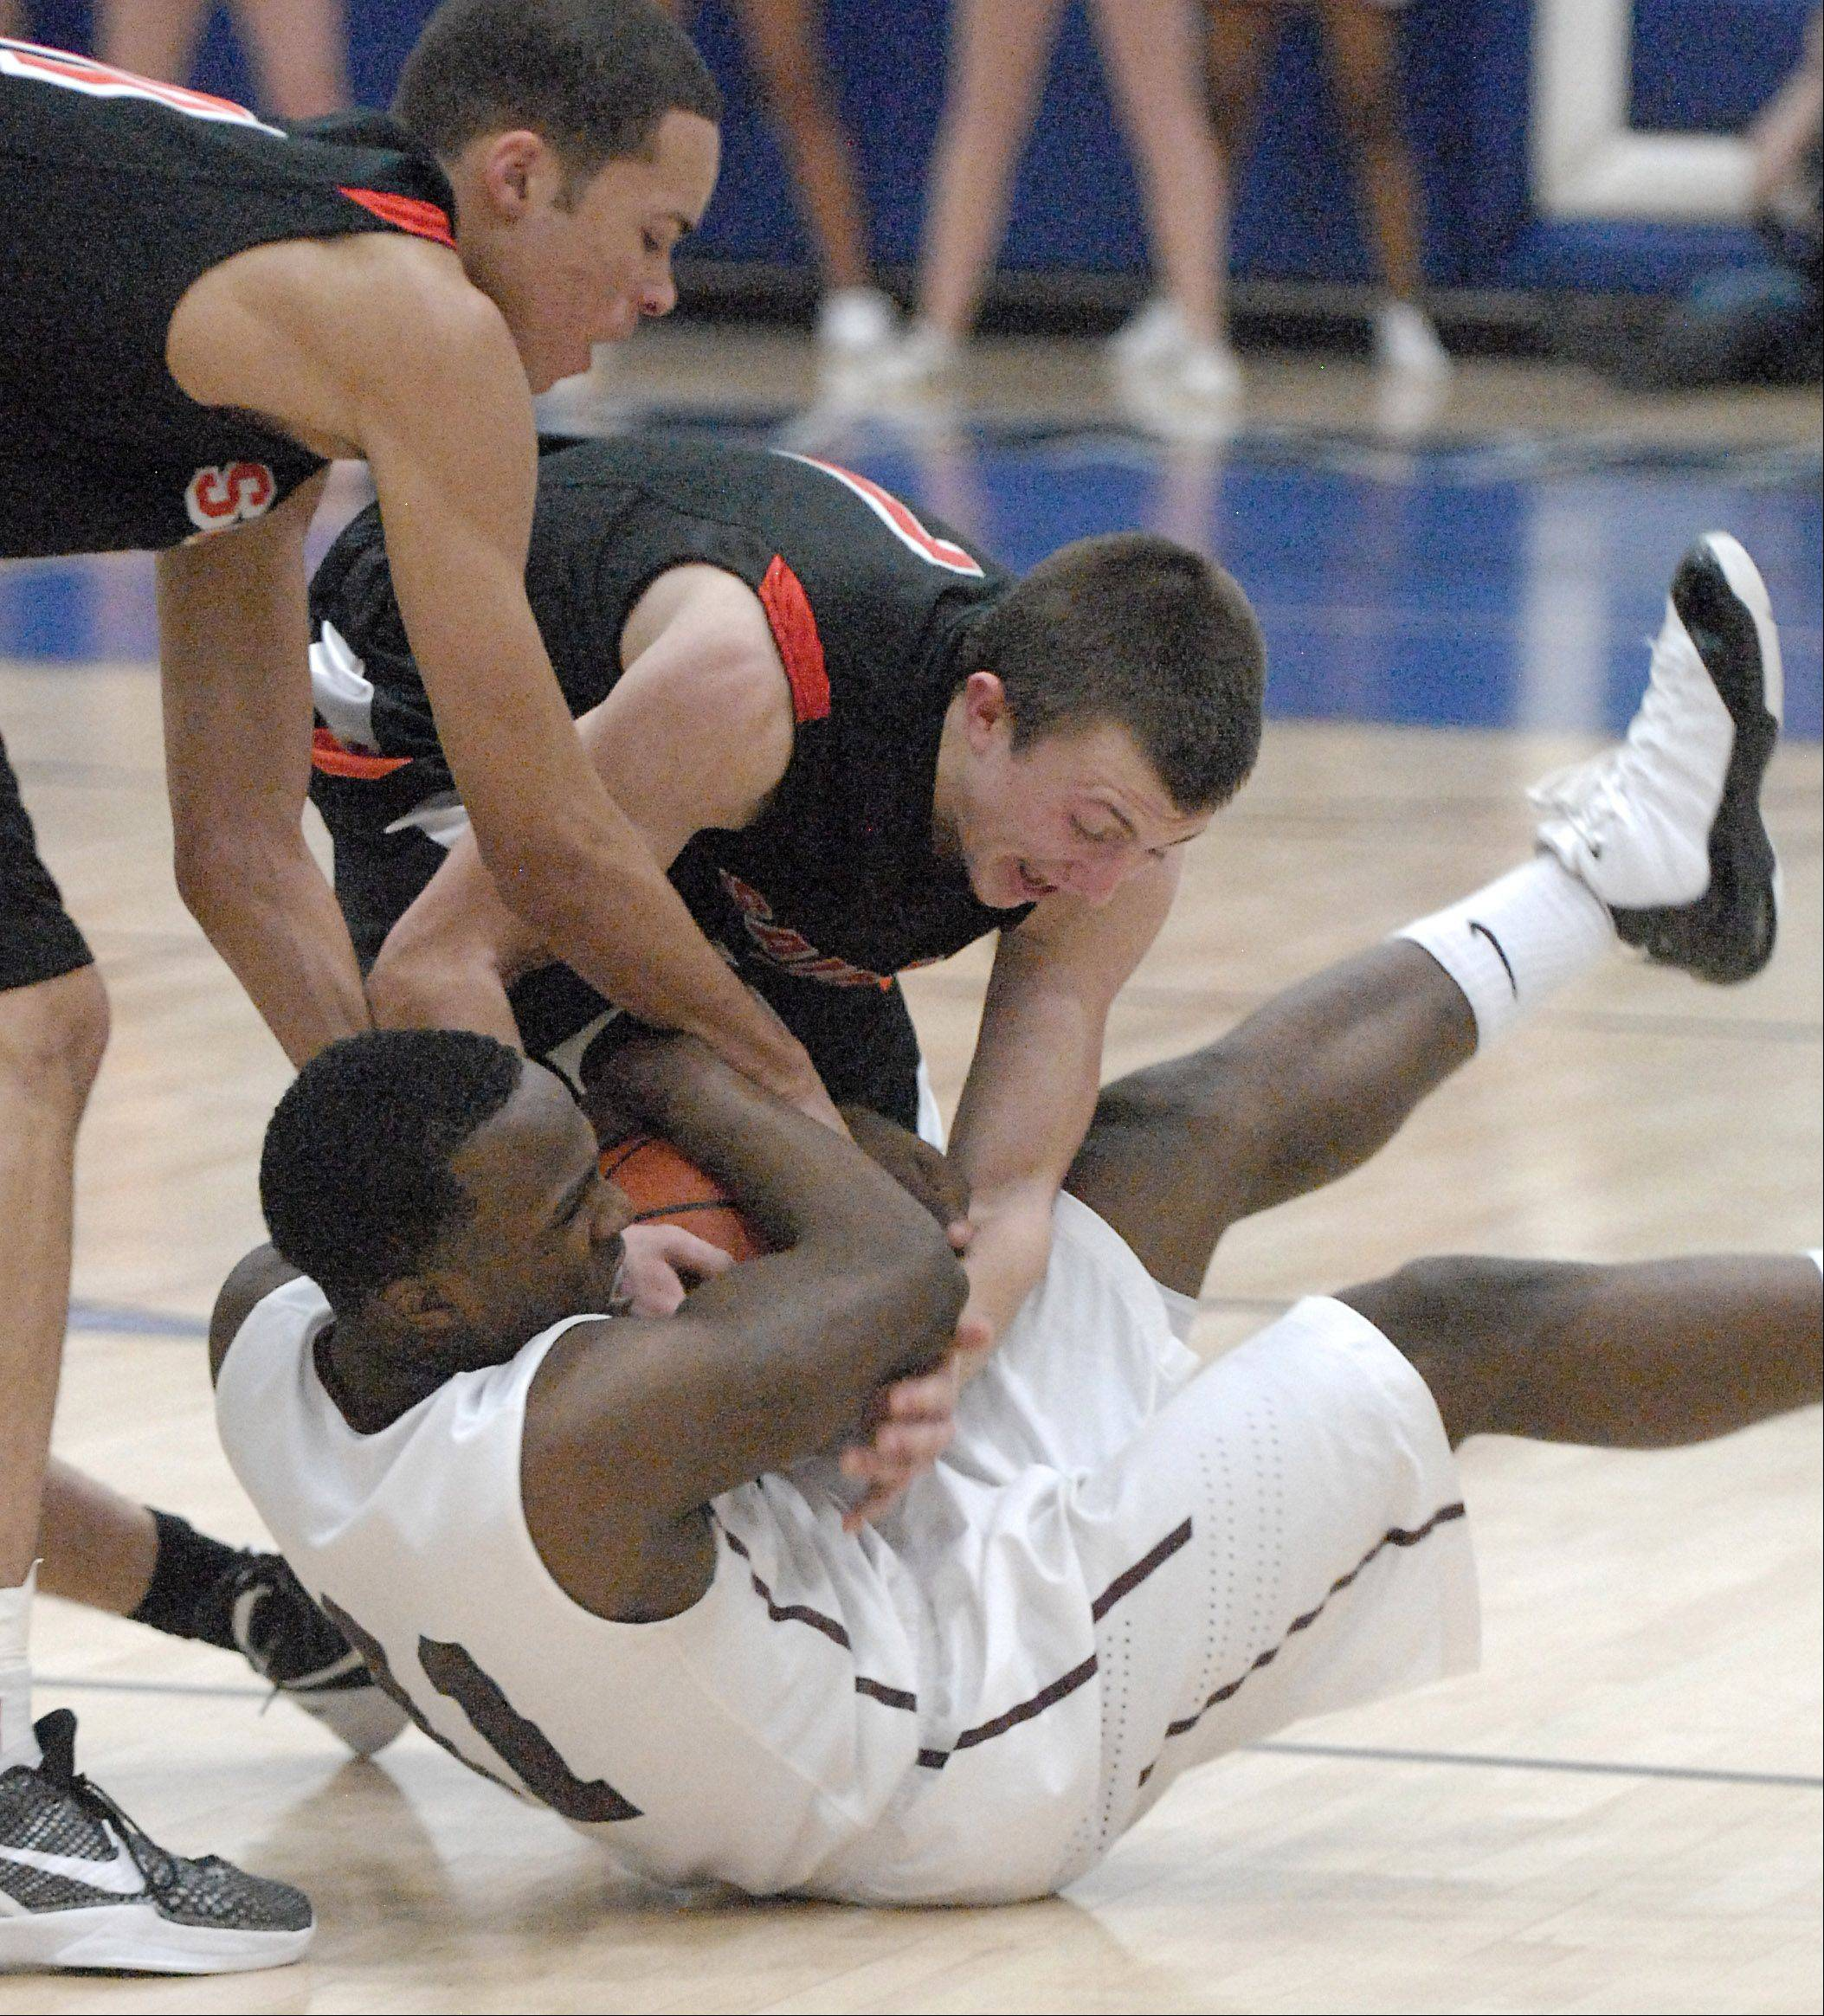 St. Charles East's Kendall Stephens and Charlie Fisher rush to wrestle a loose ball from Elgin's Dennis Moore in the fourth quarter.